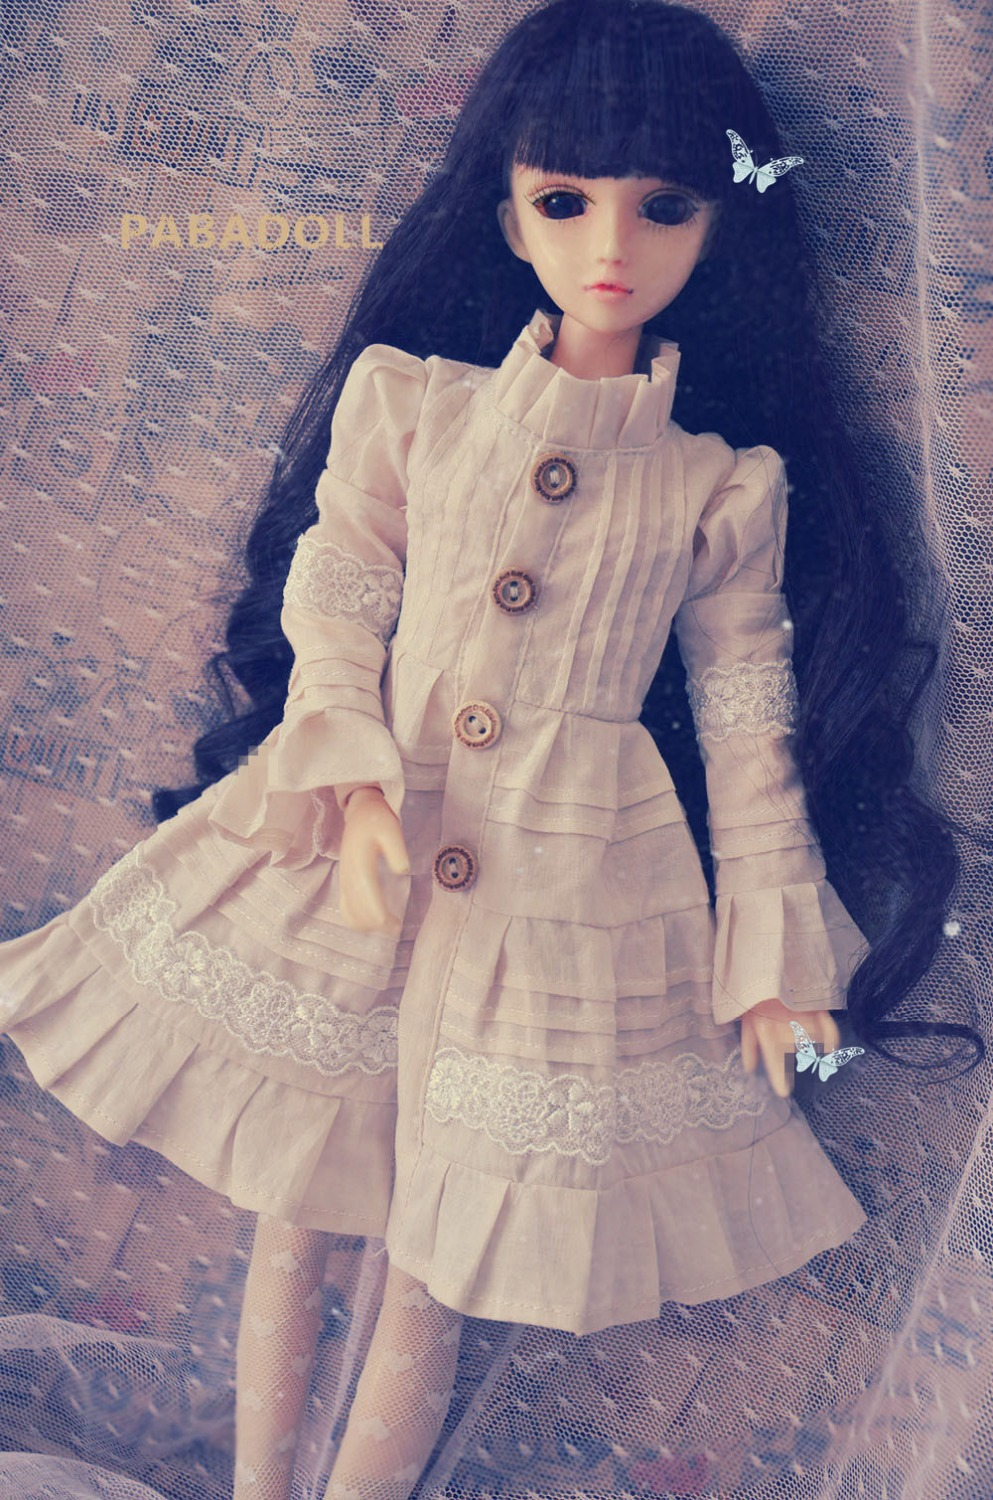 New Vintage Forest Beige Dress Dress for Bjd doll 1/4 MSD,1/3,SD10 SD13,SD16 IP EID Luts DOD,SD Doll Clothes CWB90 new handsome fashion stripe black gray coat pants uncle 1 3 1 4 boy sd10 girl bjd doll sd msd clothes